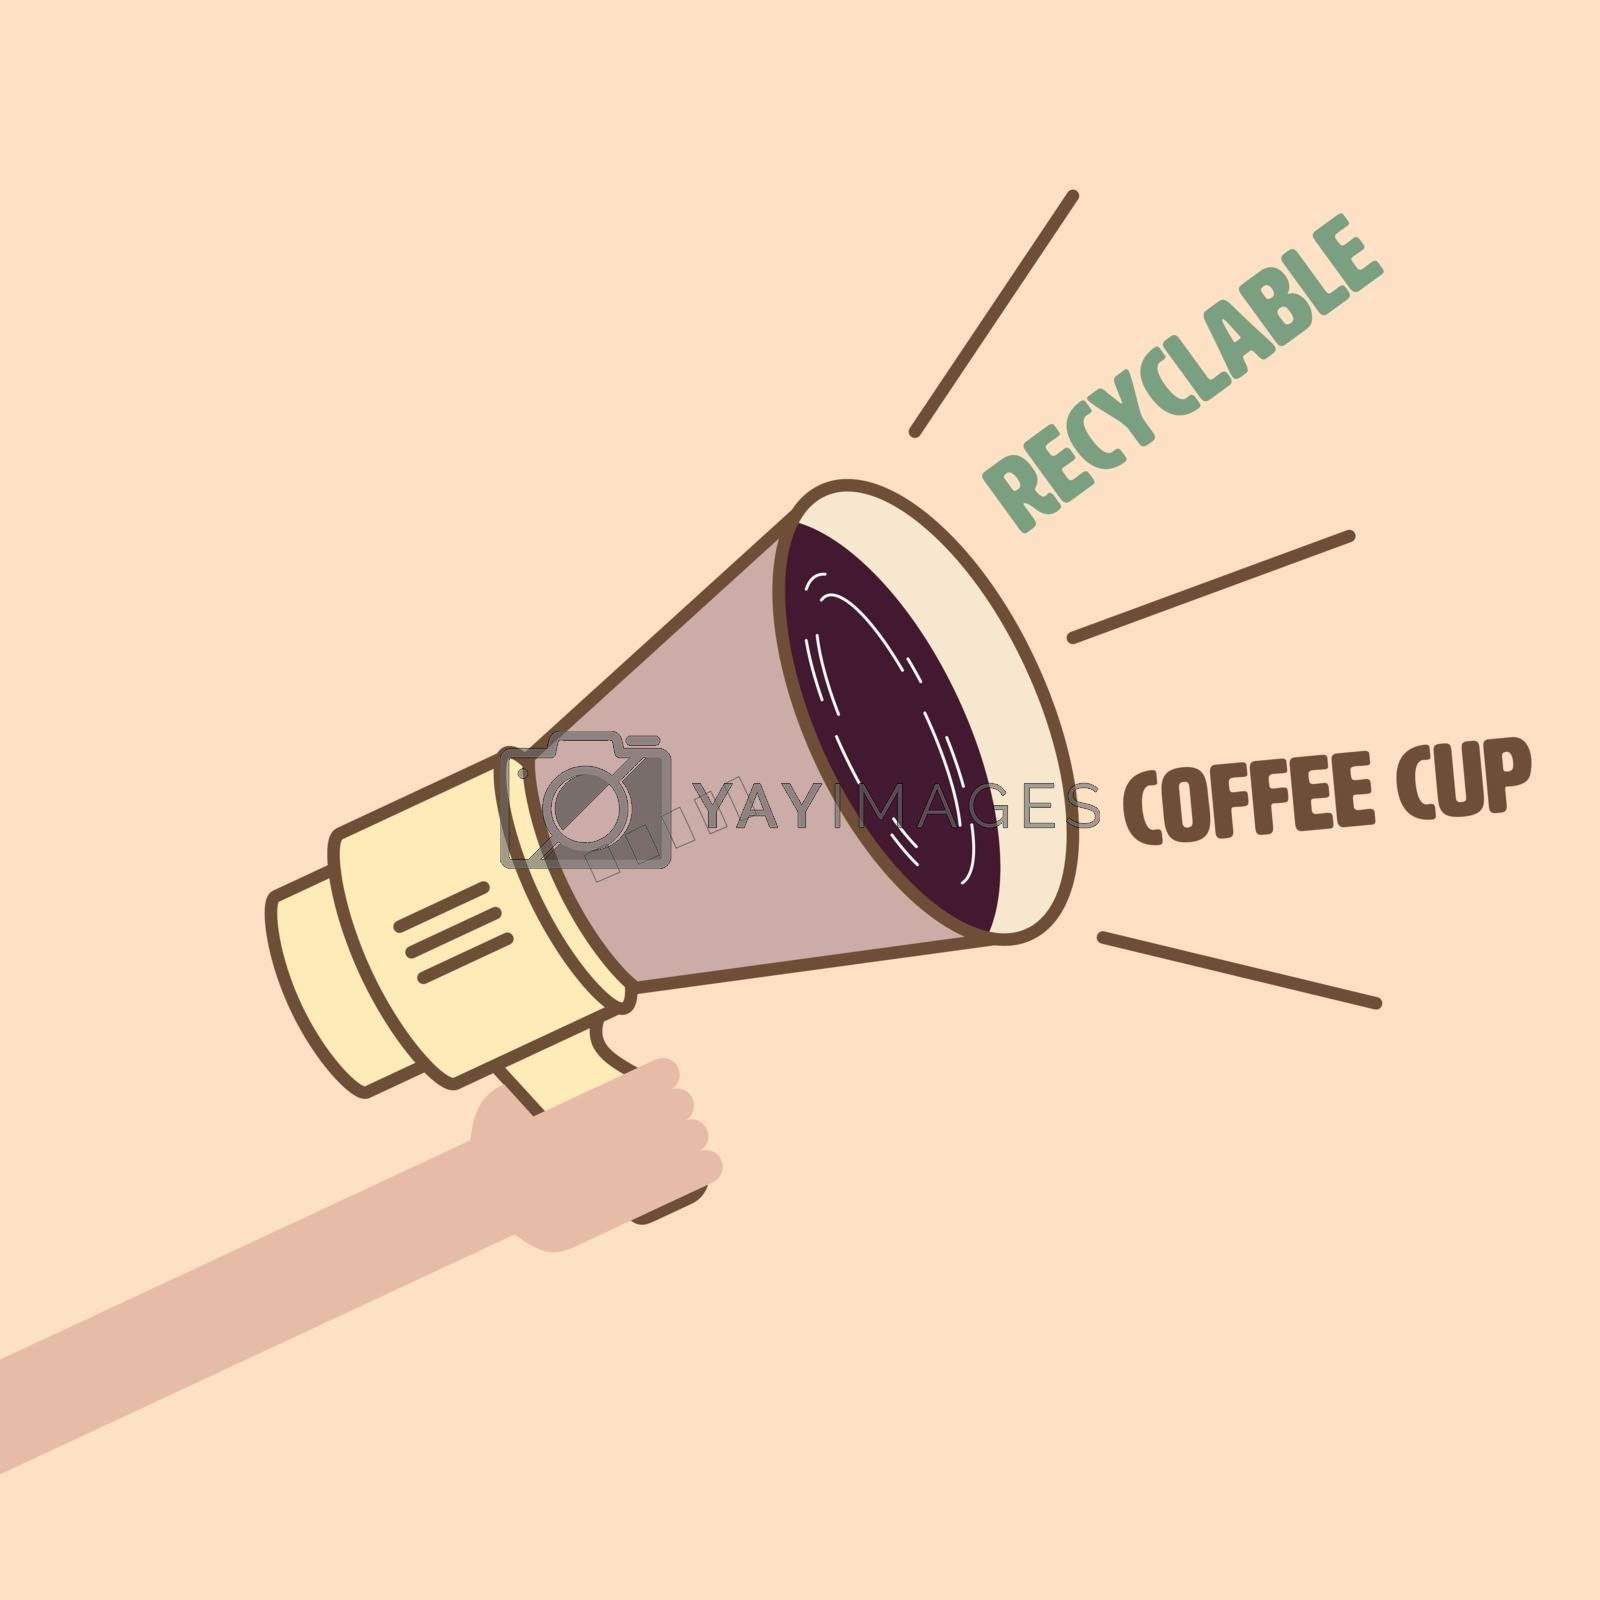 Single-use plastic coffee cup symbol apply to megaphone represent publicizing of recyclable product. Recyclable coffee cup promotion concept. Vector illustration.